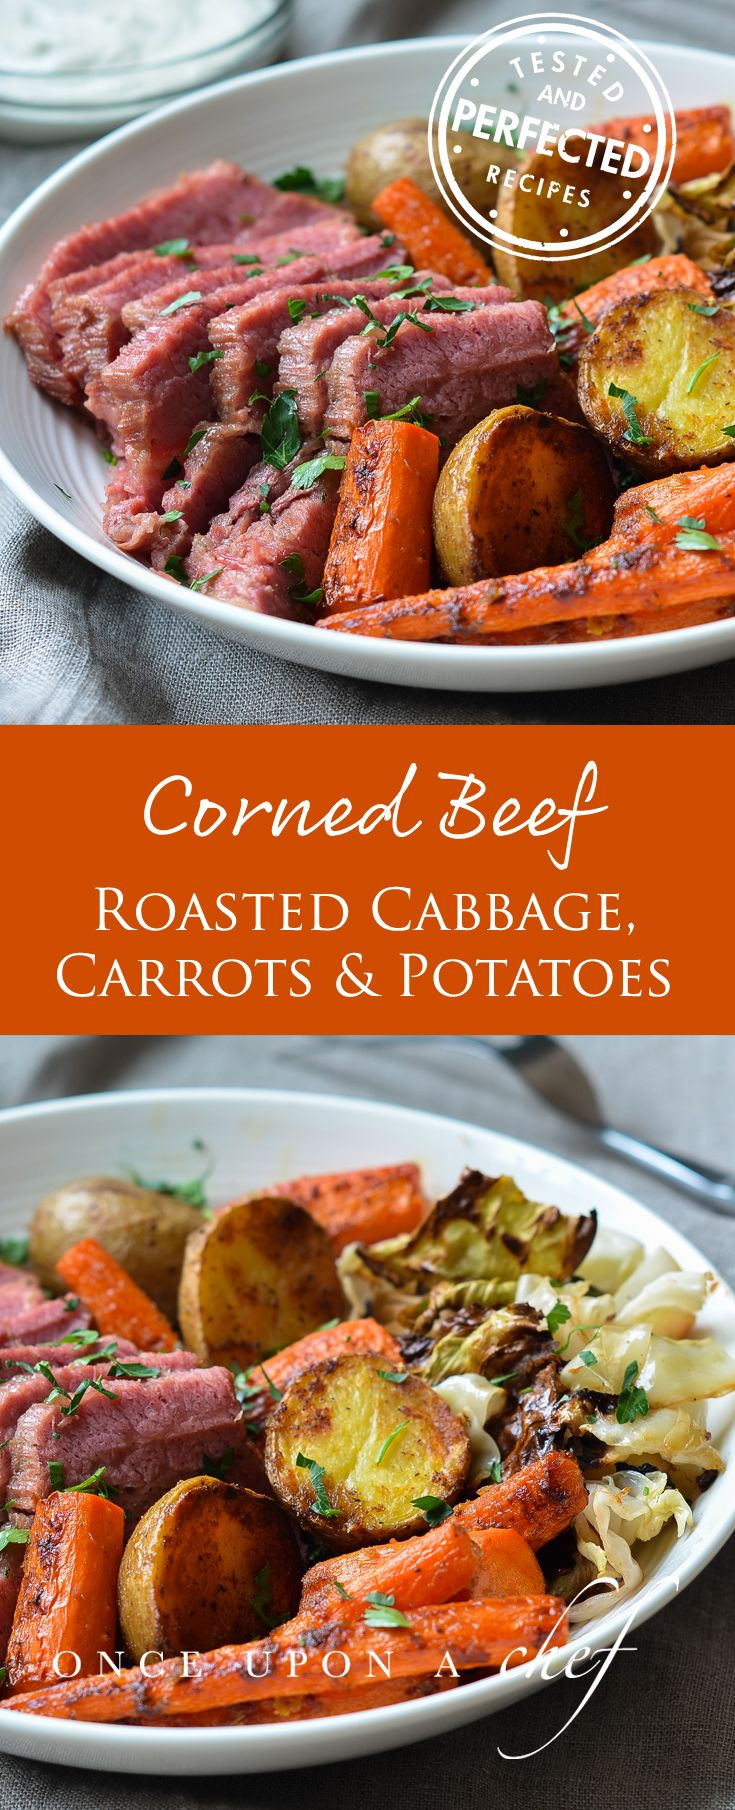 Corned Beef with Roasted Cabbage, Carrots & Potatoes + Horseradish Cream Sauce - Once Upon a Chef